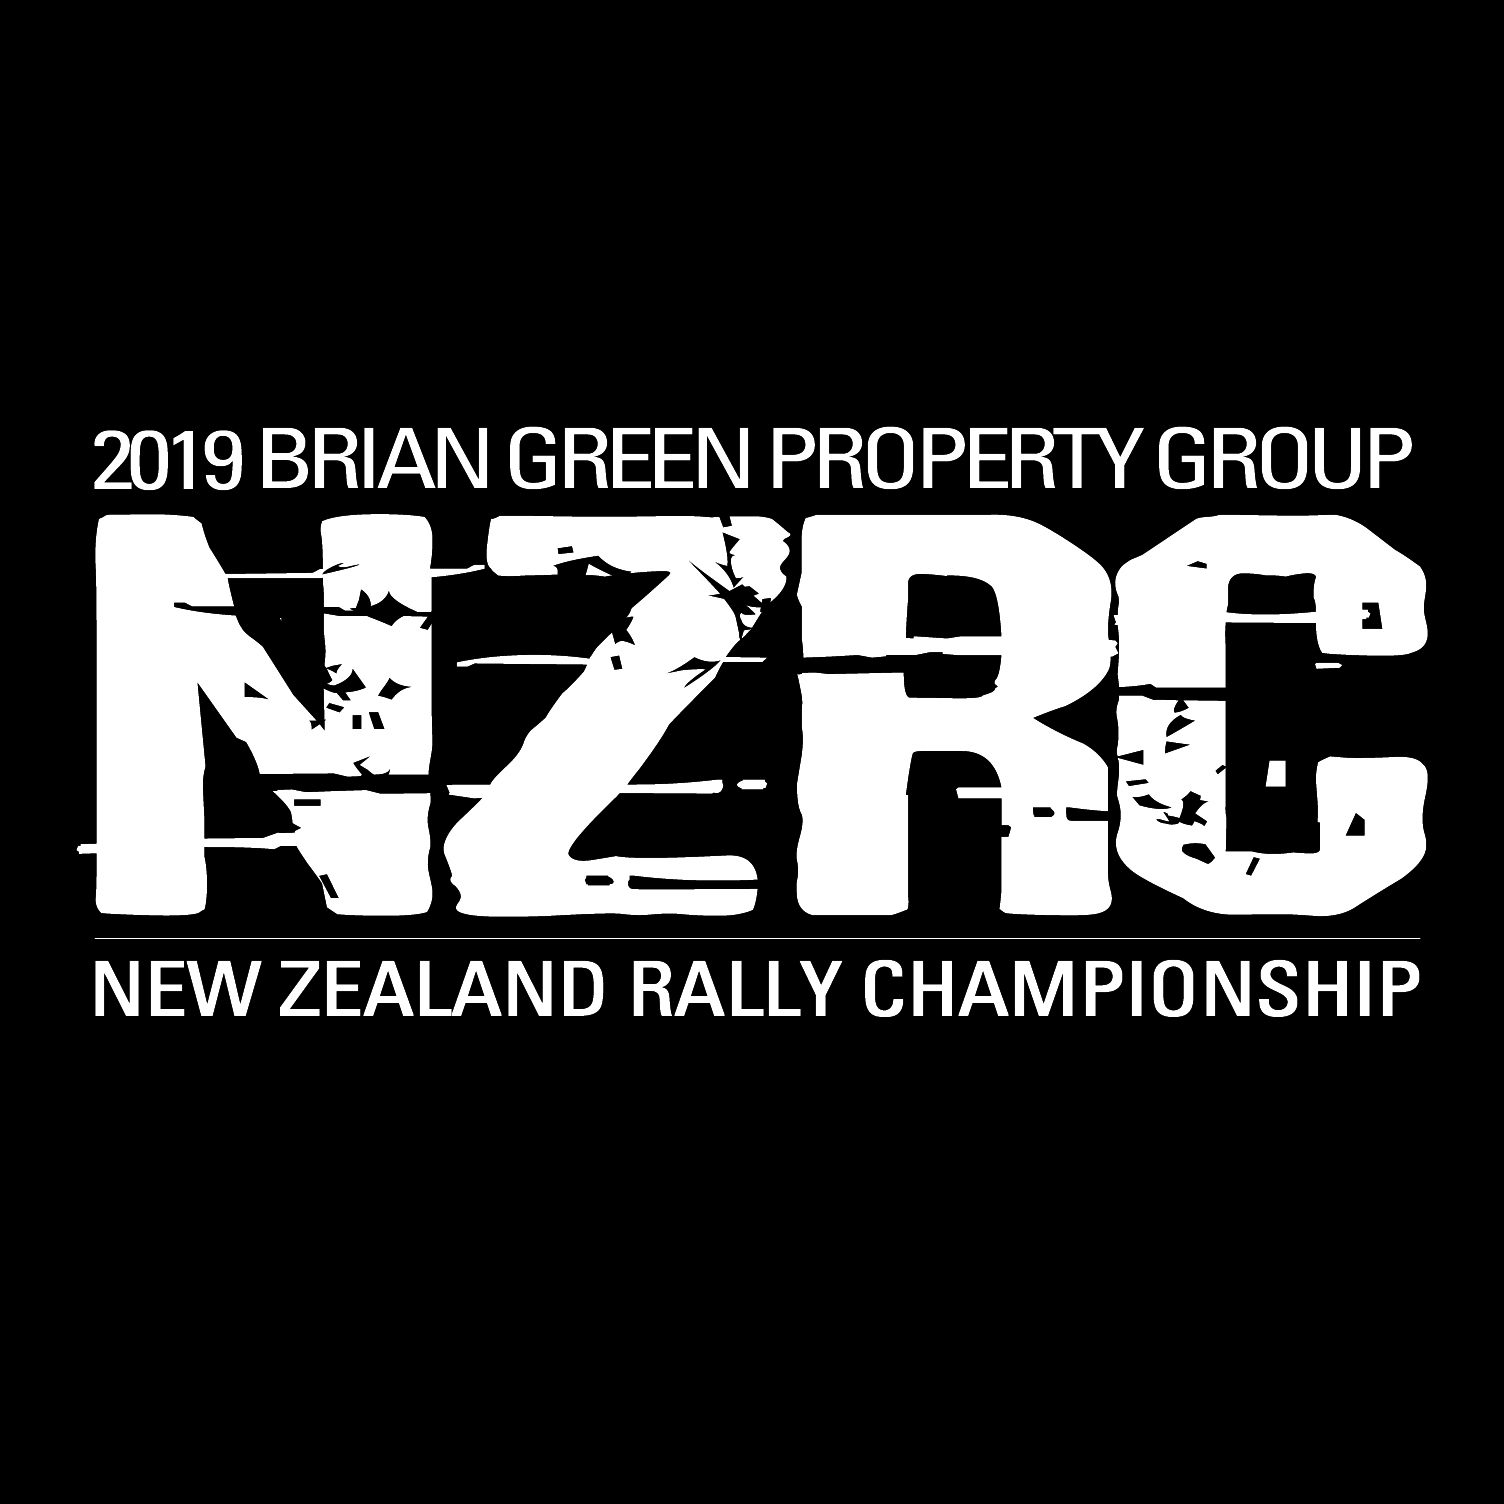 Paddon secures NZRC title at Coromandel | :: Brian Green Property Group New Zealand Rally Championship ::